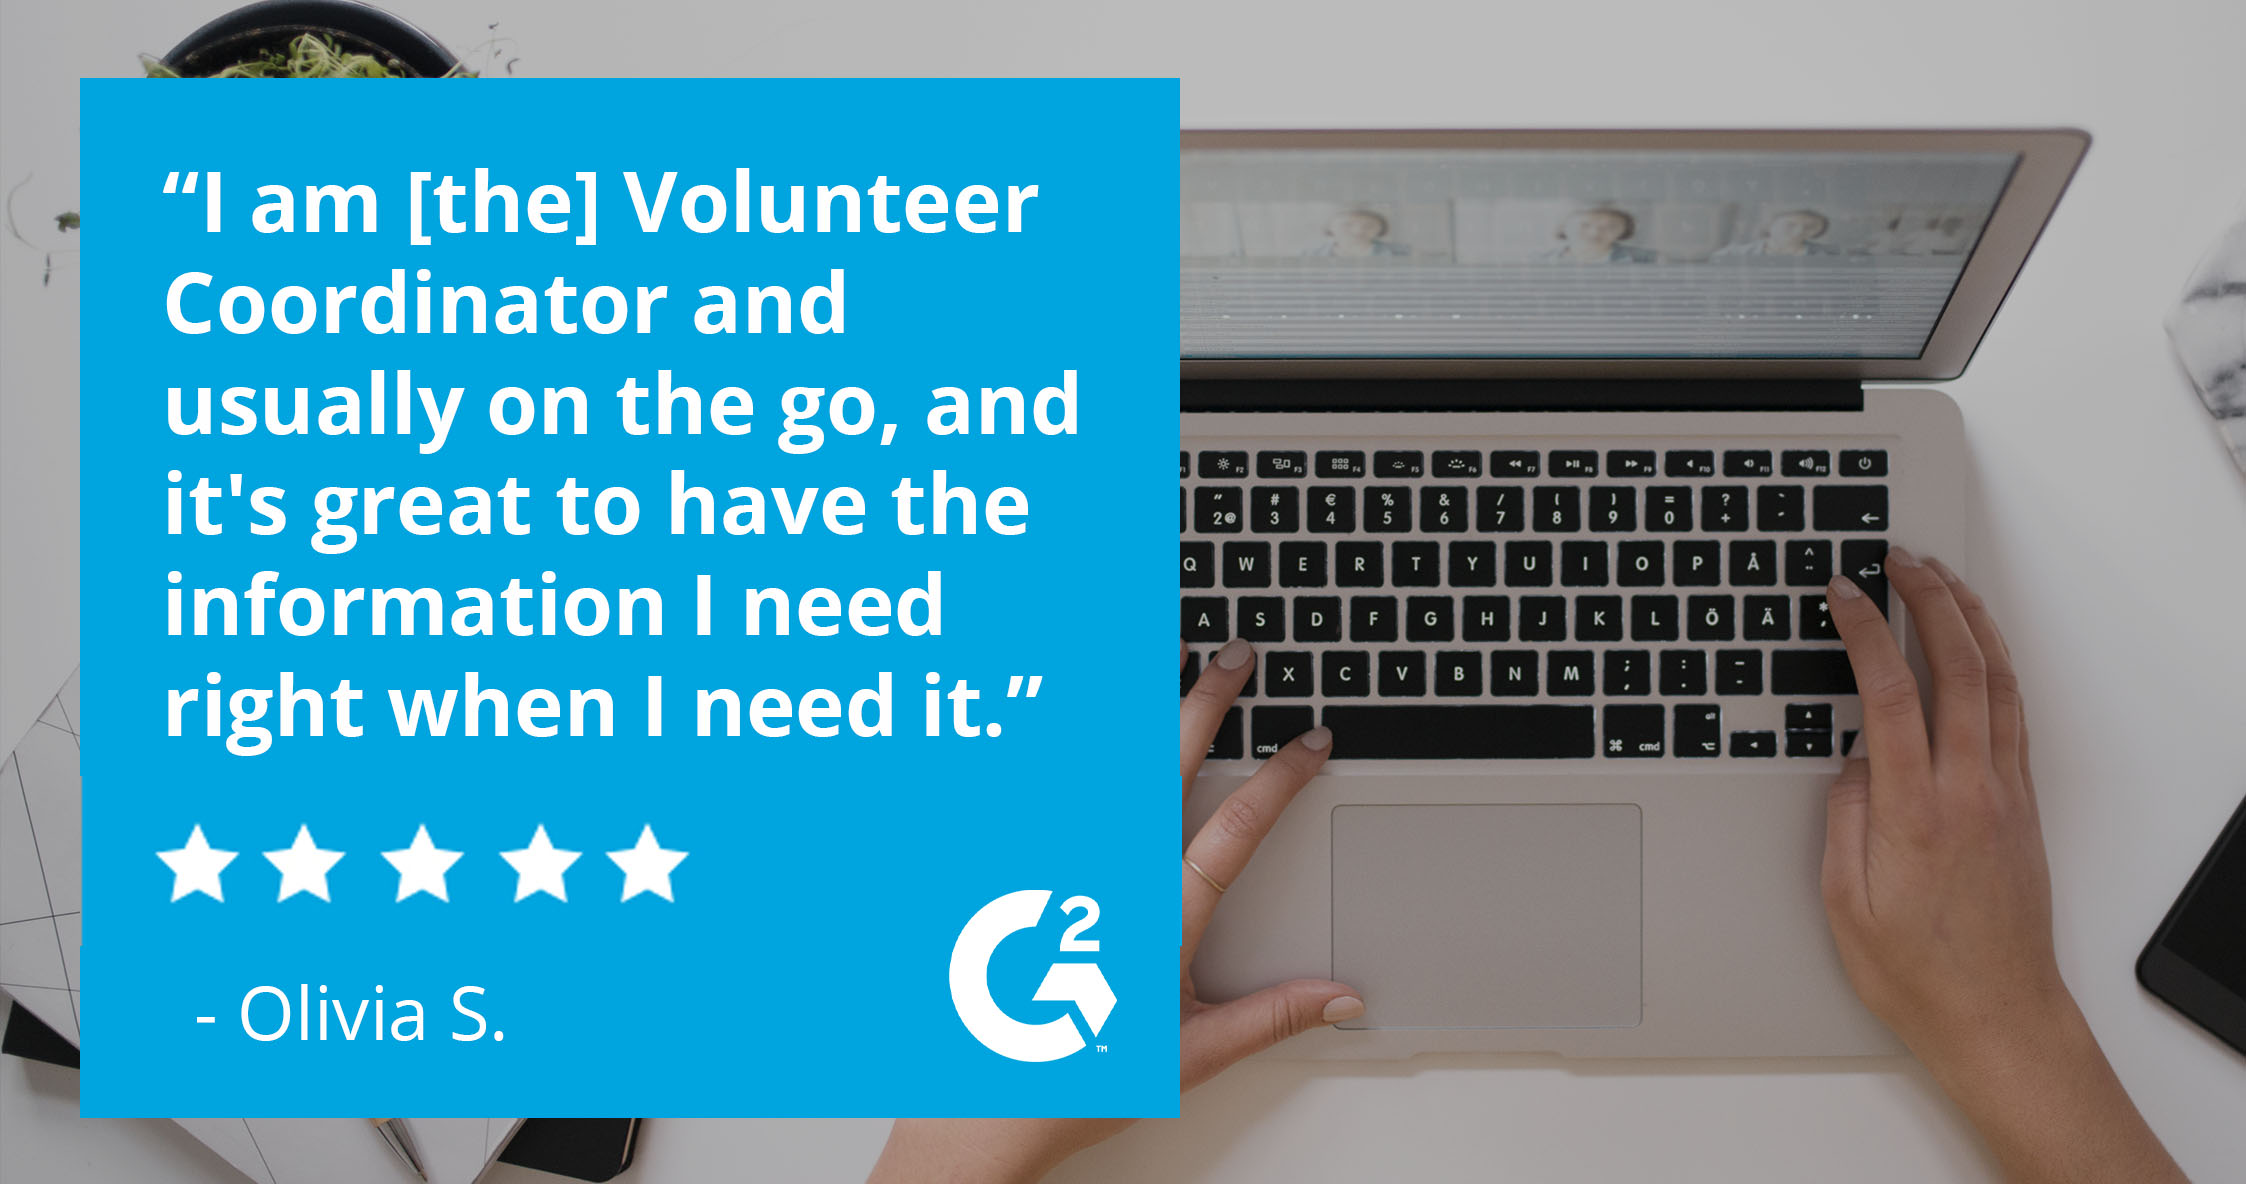 """""""I am [the] Volunteer Coordinator and usually on the go, and it's great to have the information I need right when I need it."""" - Olivia S."""